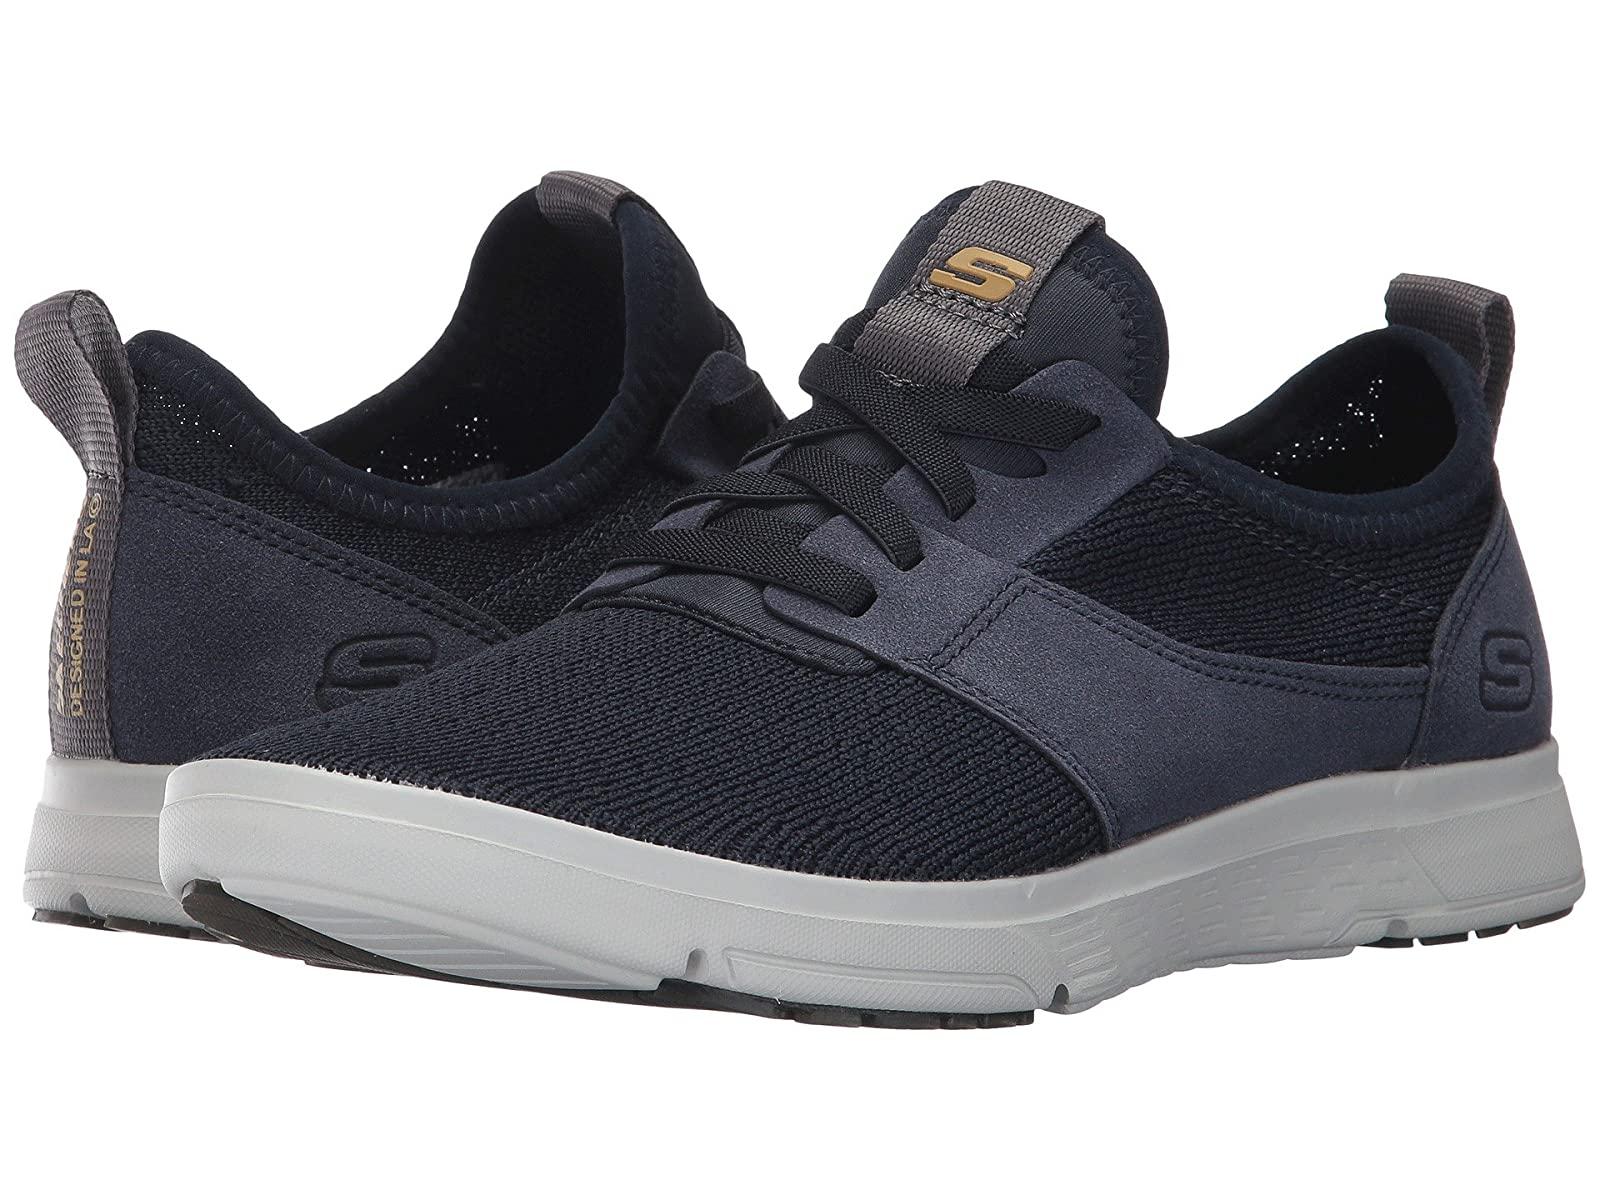 SKECHERS Classic Fit Moogen - HolderCheap and distinctive eye-catching shoes